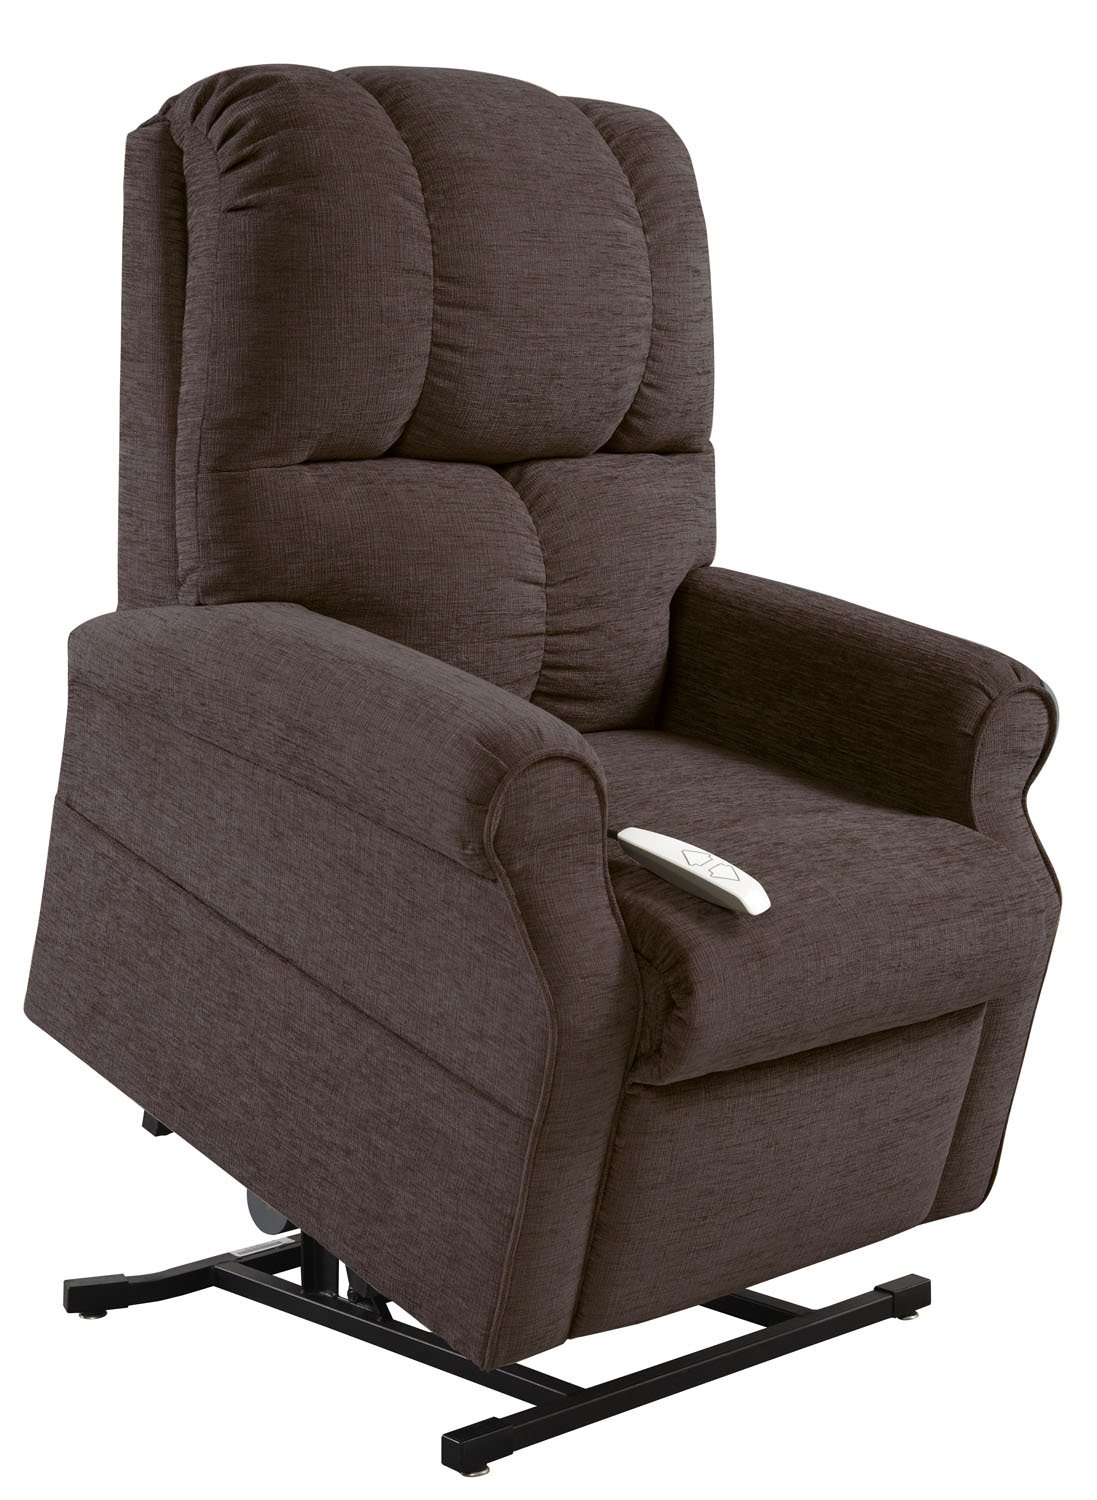 Windermere NM-2001 3 Position Lift Chair - Godiva (curbside delivery)